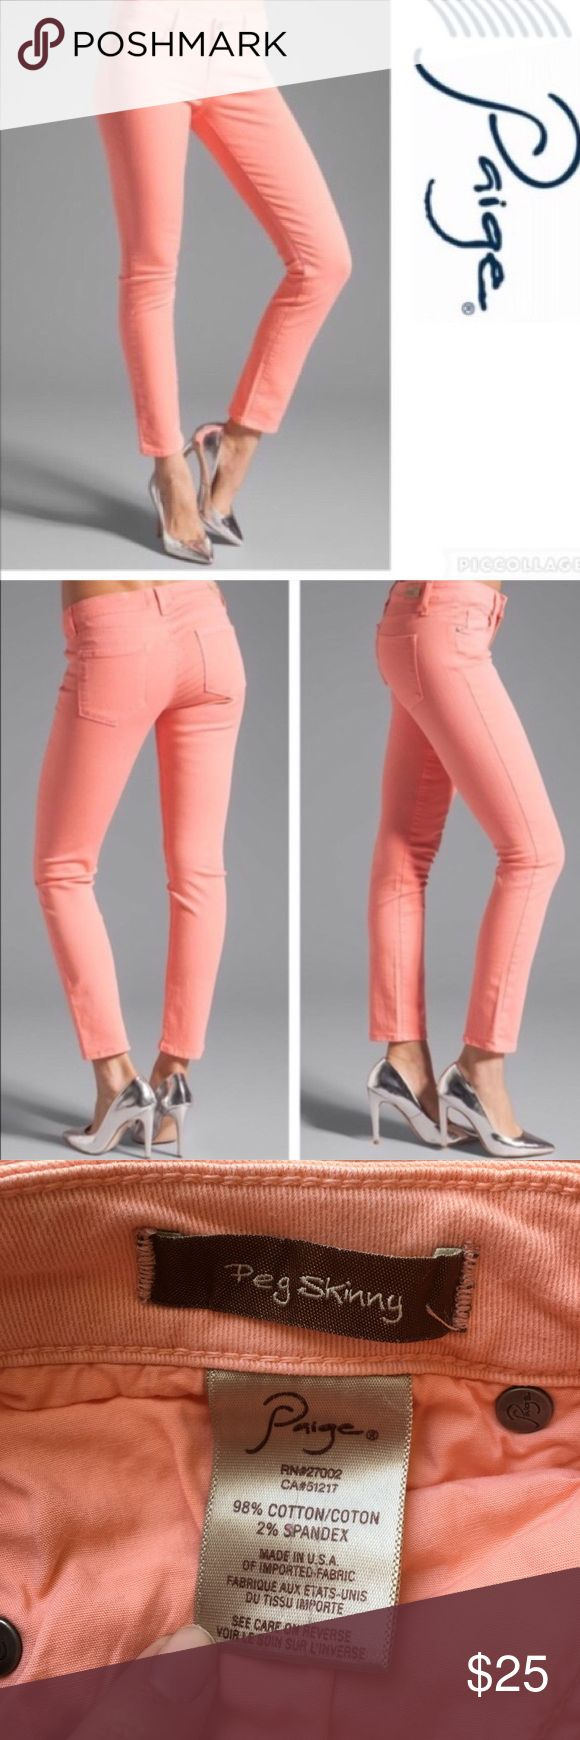 Paige Peg Skinny Coral Skinny Jeans EUC. No flaws. First two pics are the most accurate for fit and color. Paige Jeans Jeans Skinny